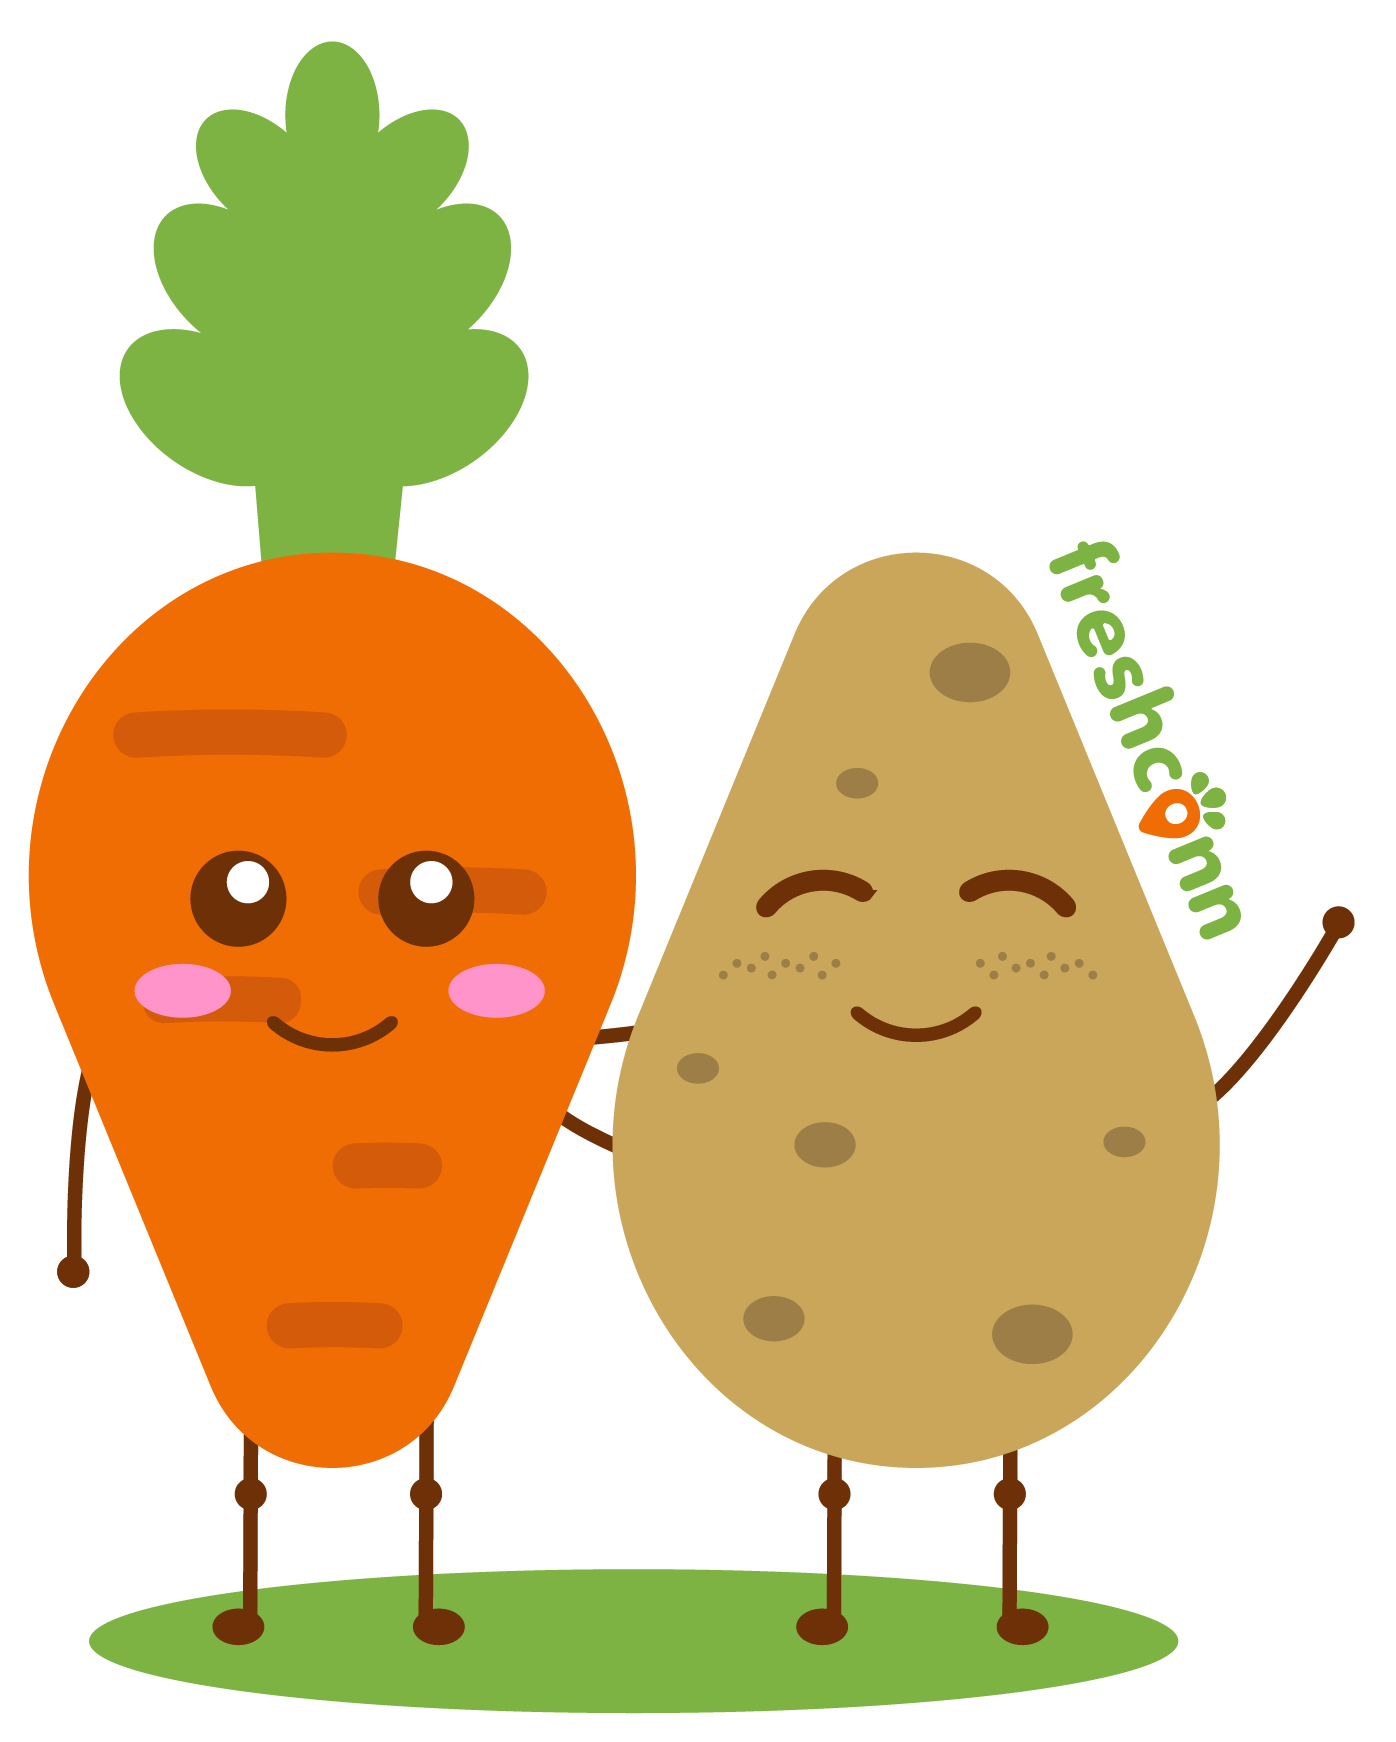 carrot_potato sticker.png